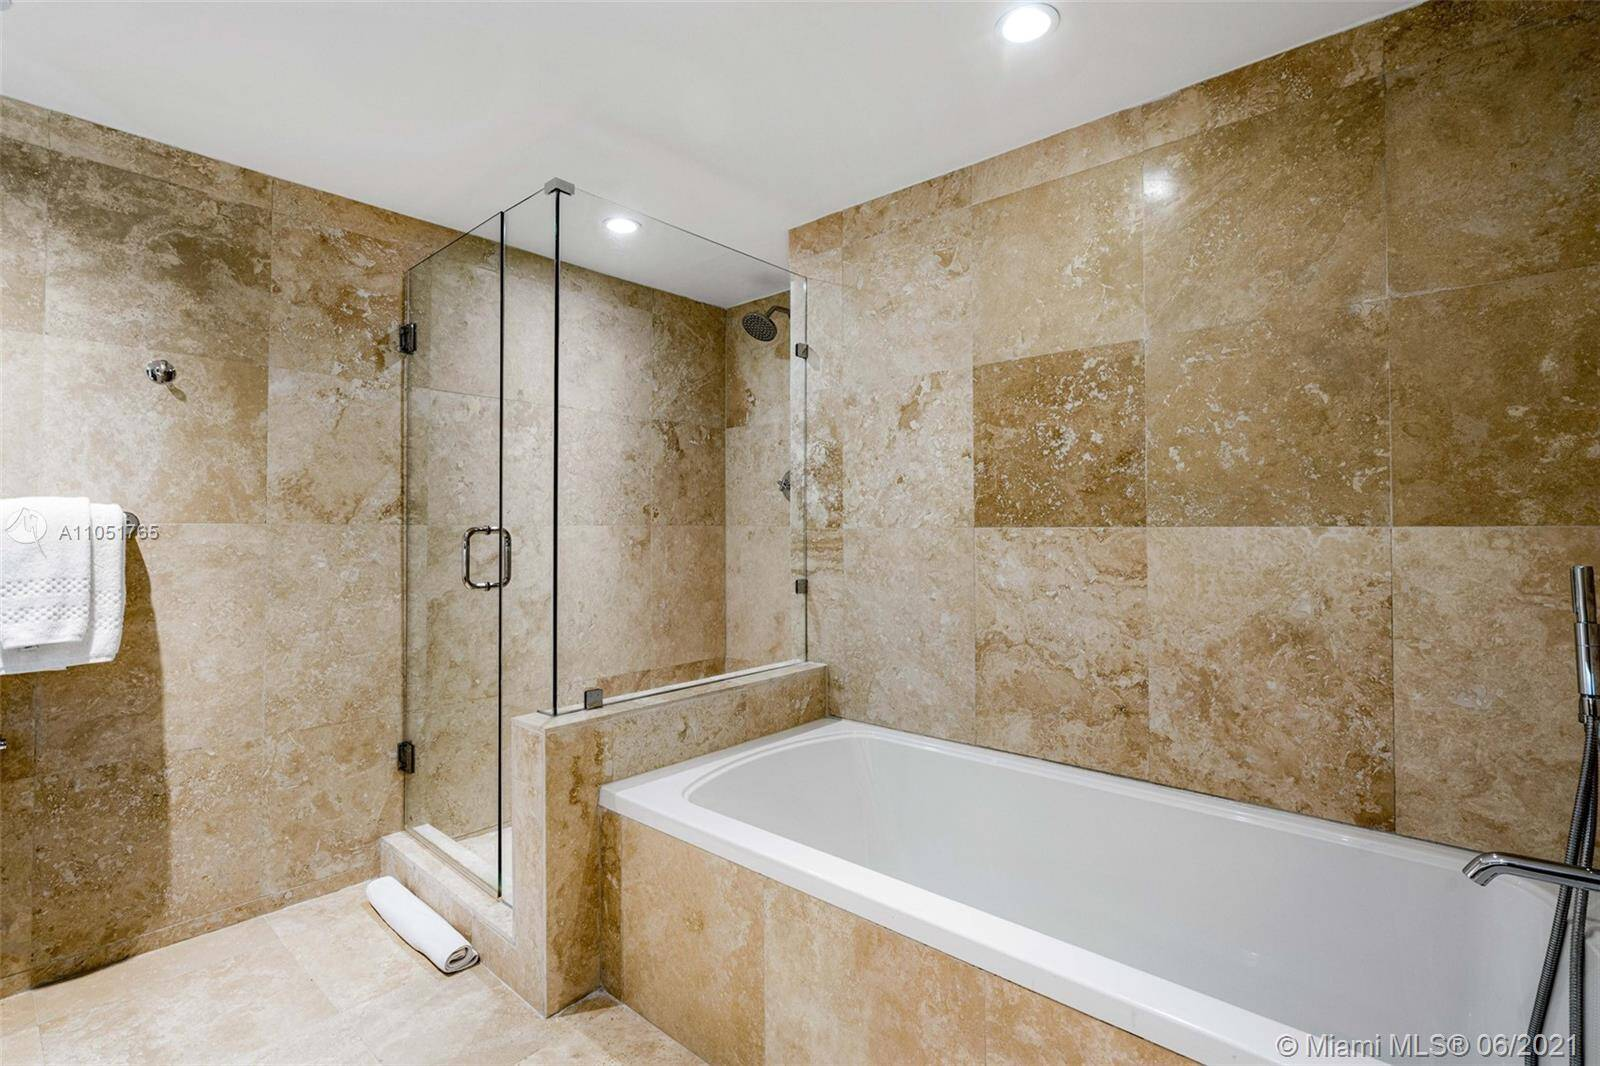 1 Hotel & Homes Unit #1115 | Picture 23